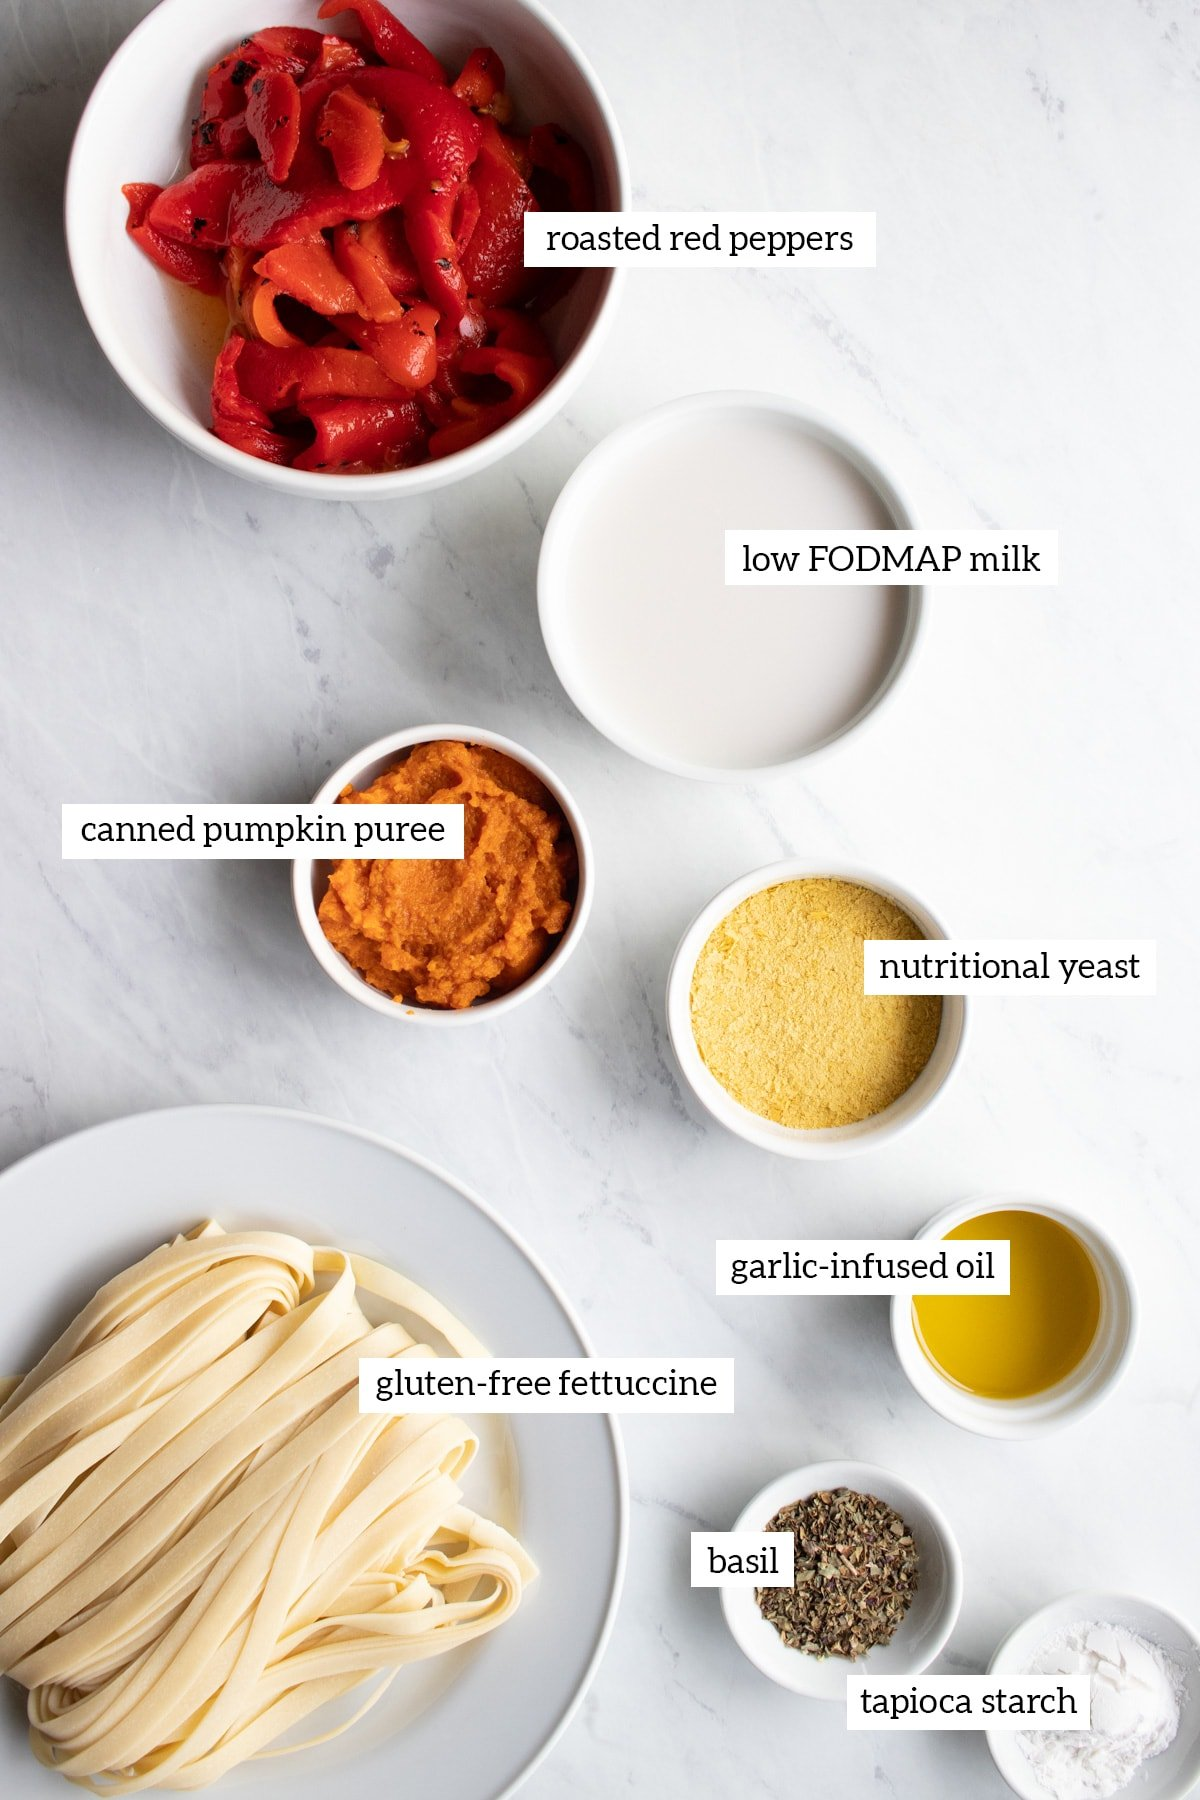 The ingredients needed for roasted red pepper pasta are measured out into individual white dishes.